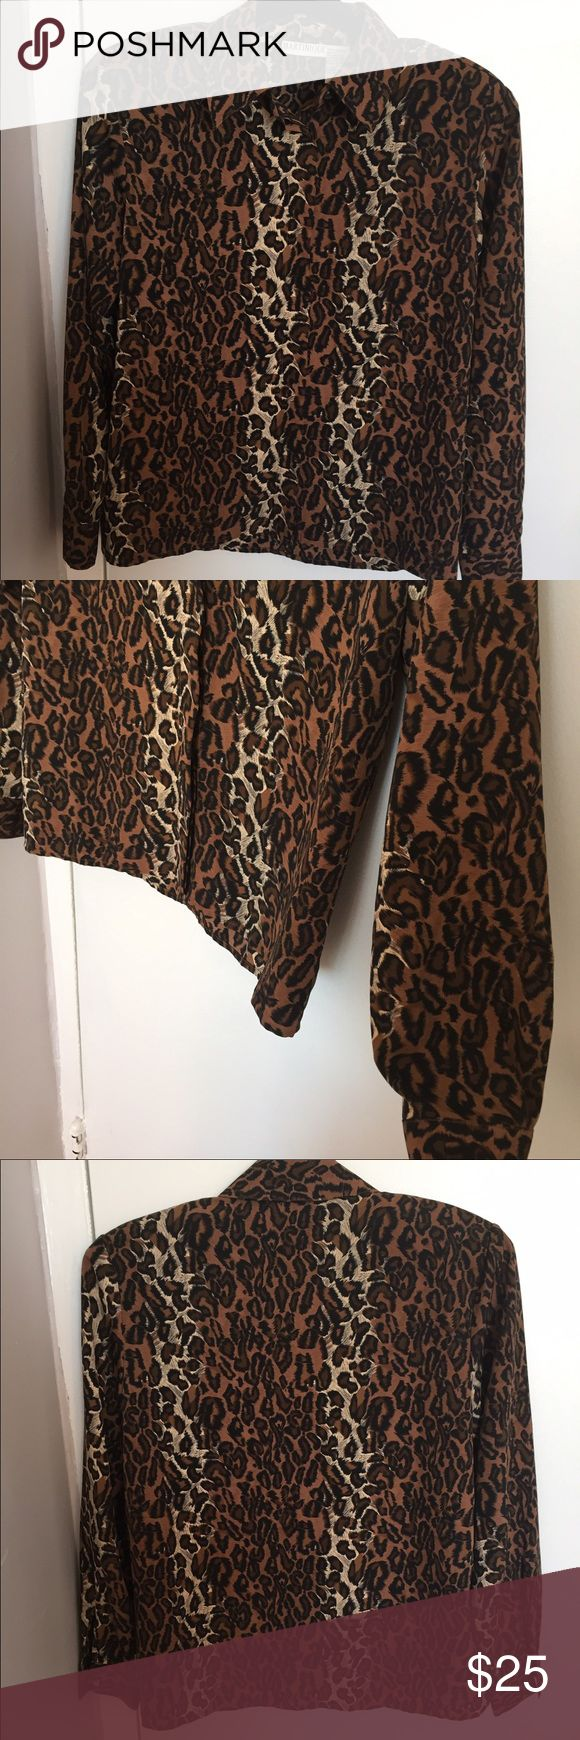 NWOT Animal Print Blouse Size 8 Beautiful animal print blouse.m, very light weight, removable shoulder pads inside, chest is 40 all around, length is 24 inches, polyester. Never worn! Martinique Tops Blouses